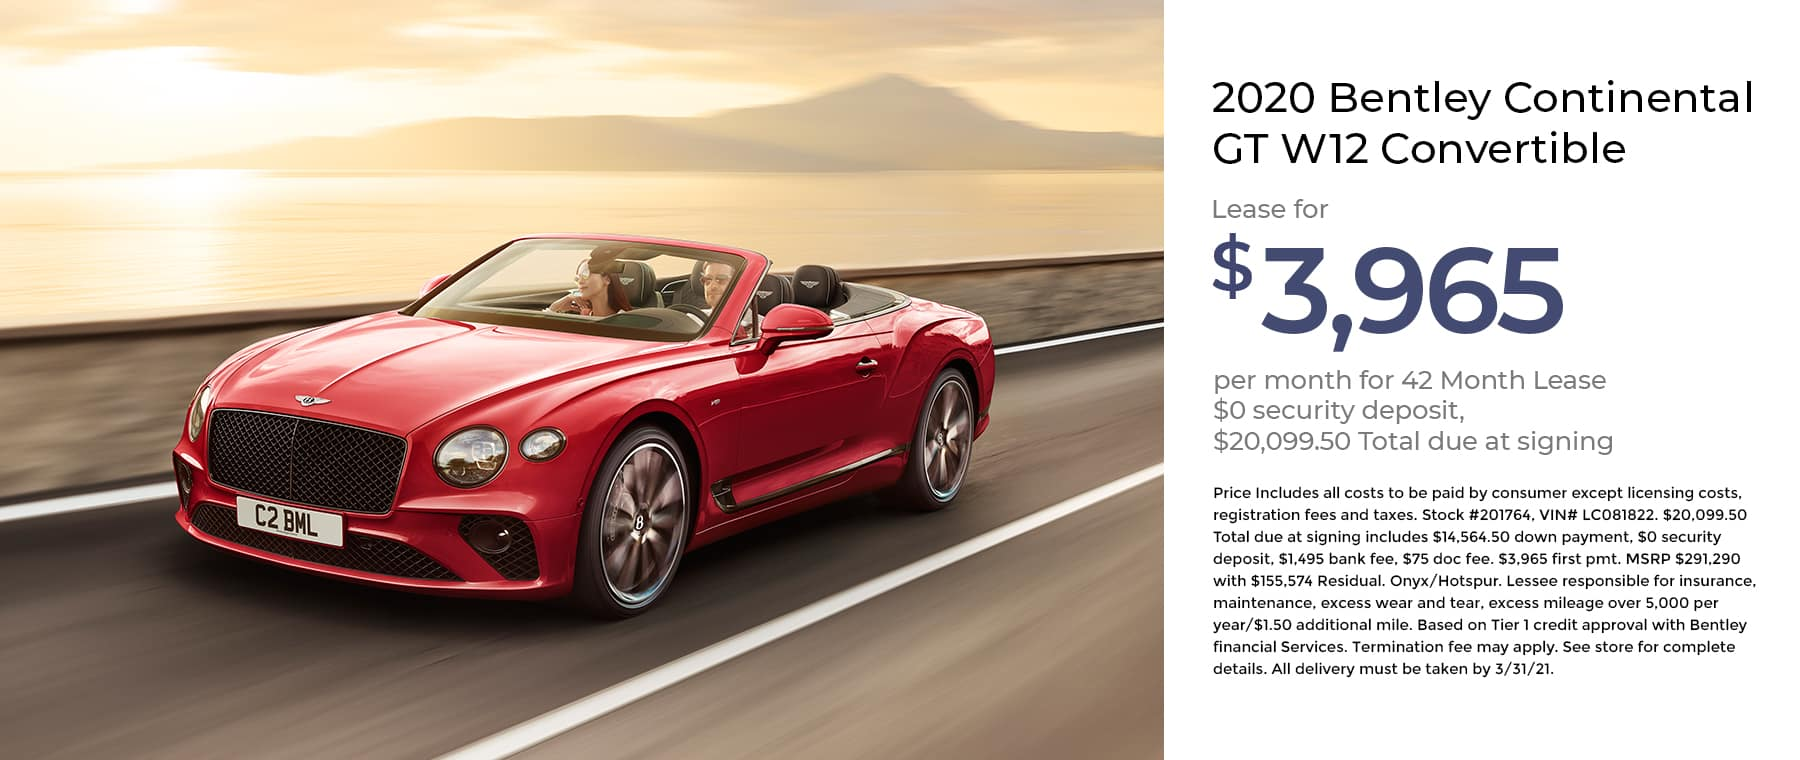 Bentley Continental GT W12 Convertible 1800×760 January 2021